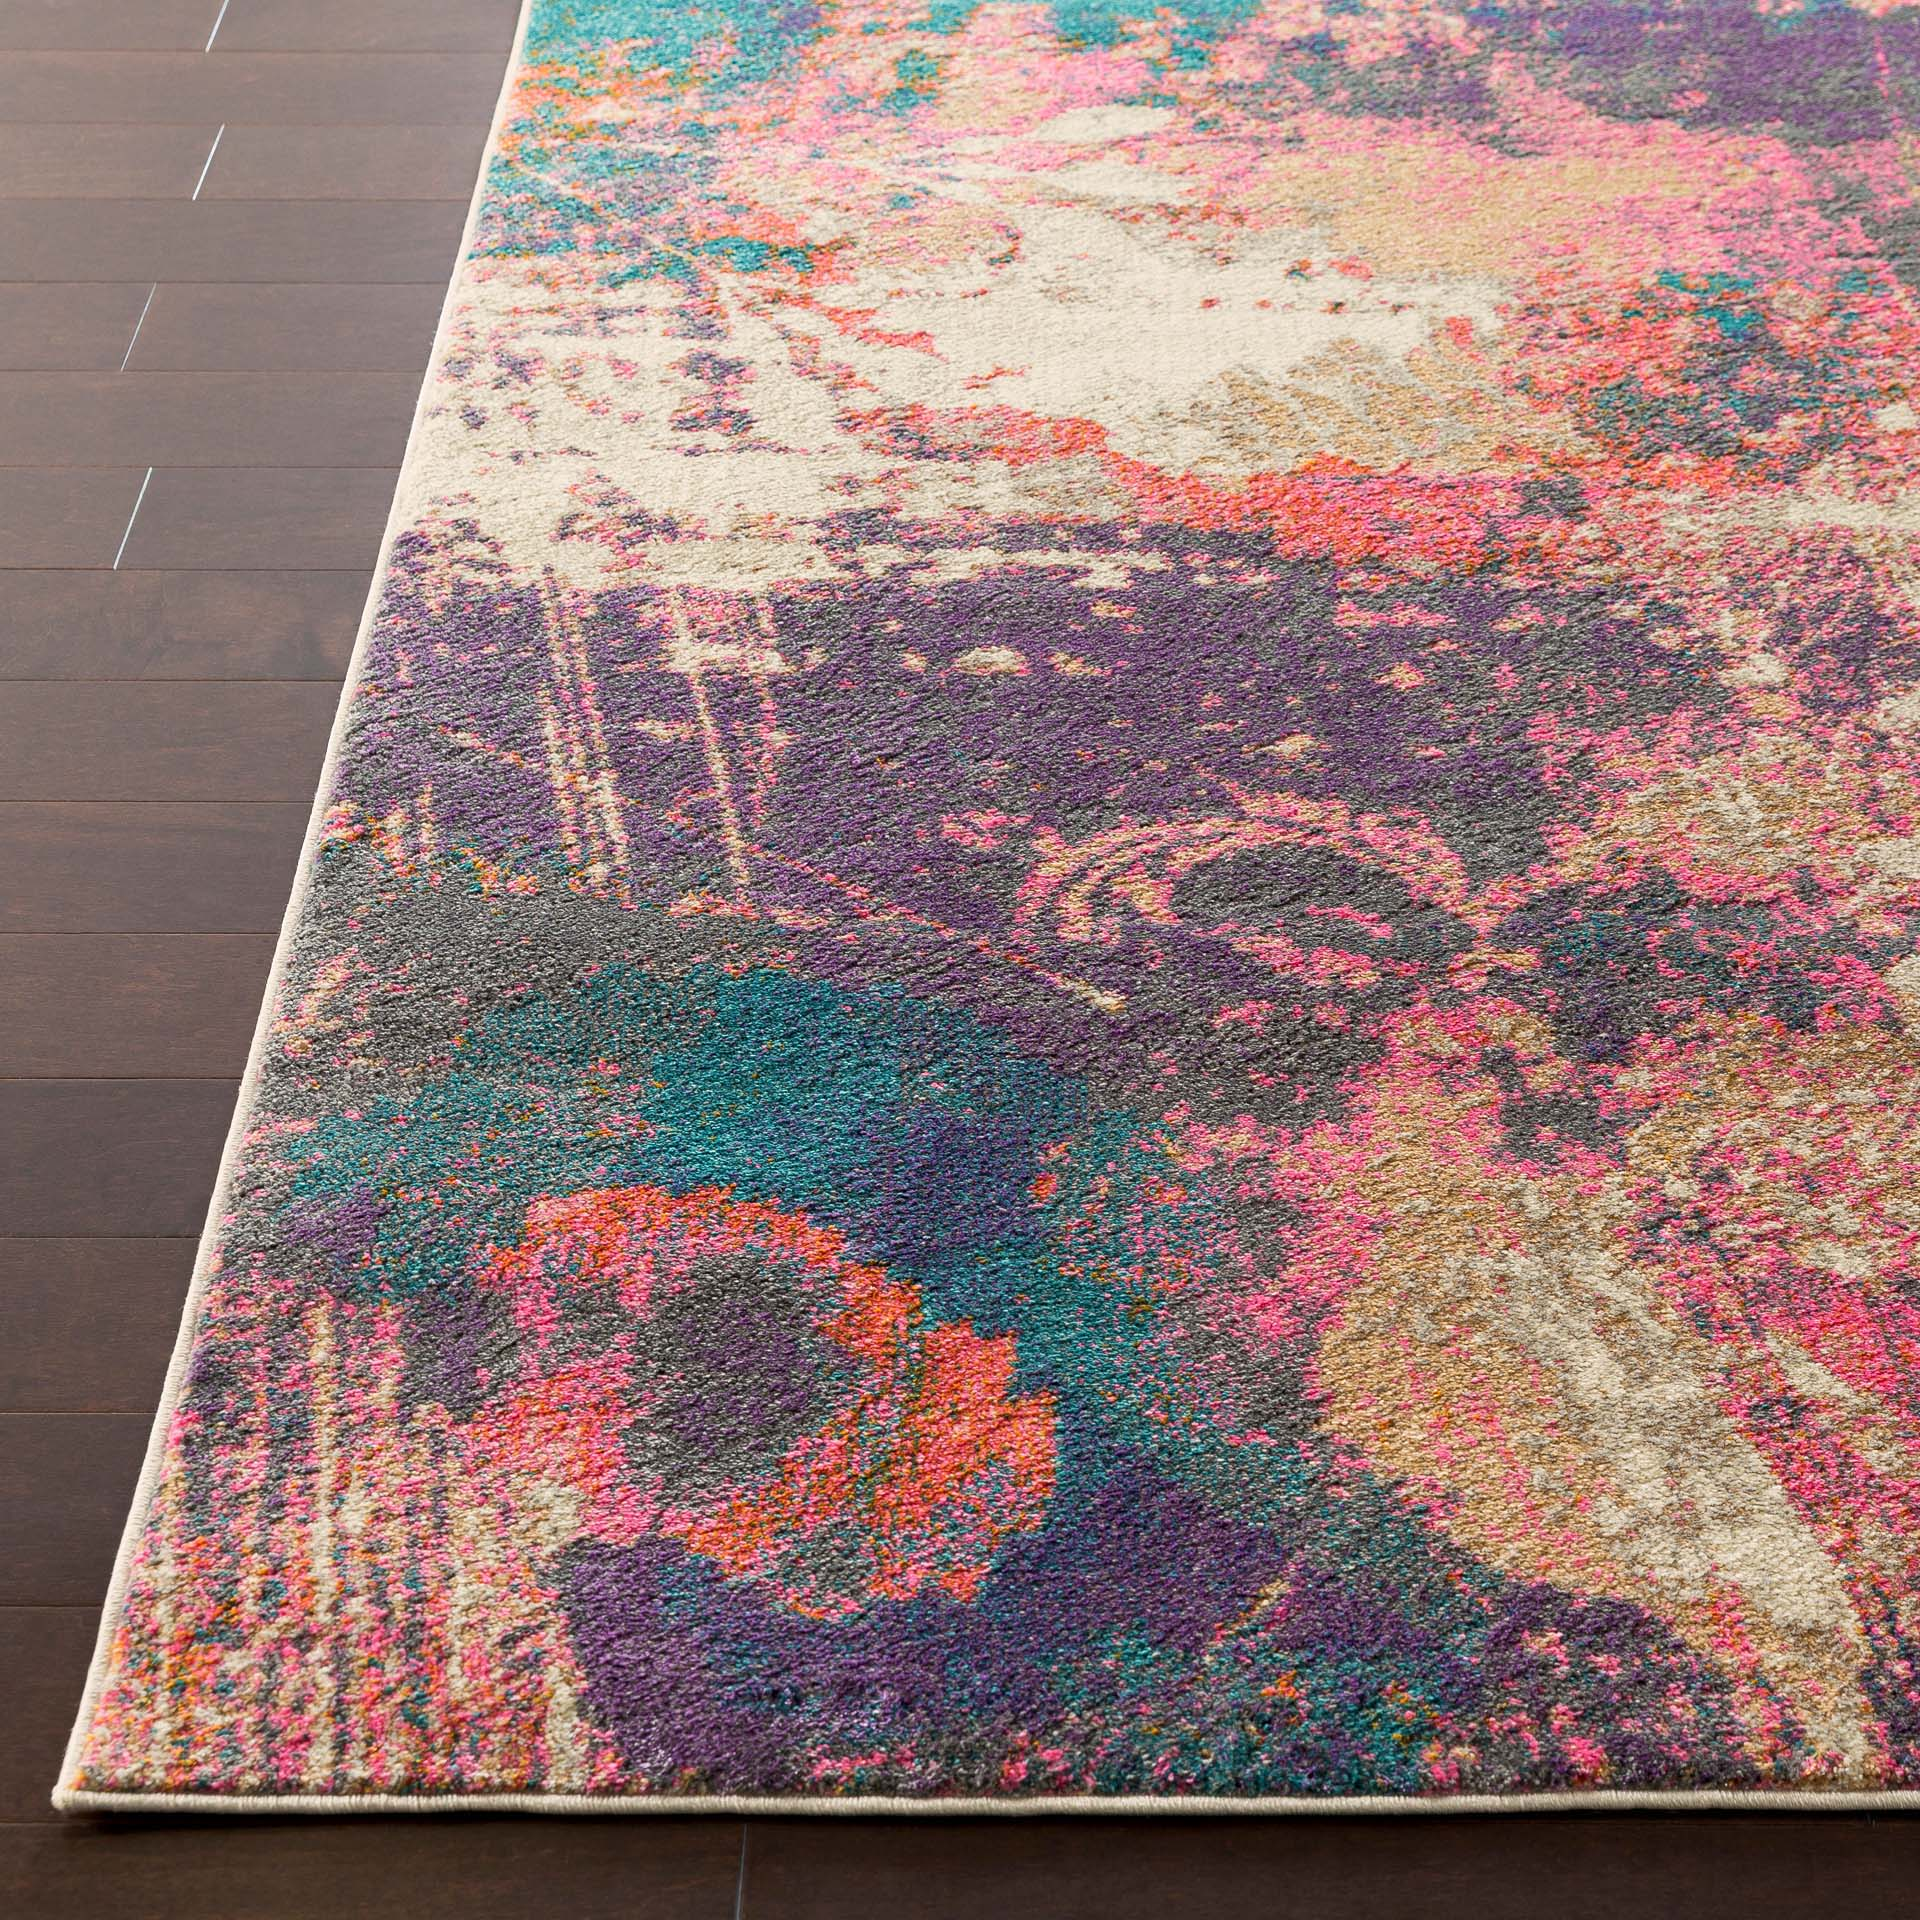 Abstract art inspired Turkish area rug with splashes of cream, purple, pink, orange and teal on wood floor